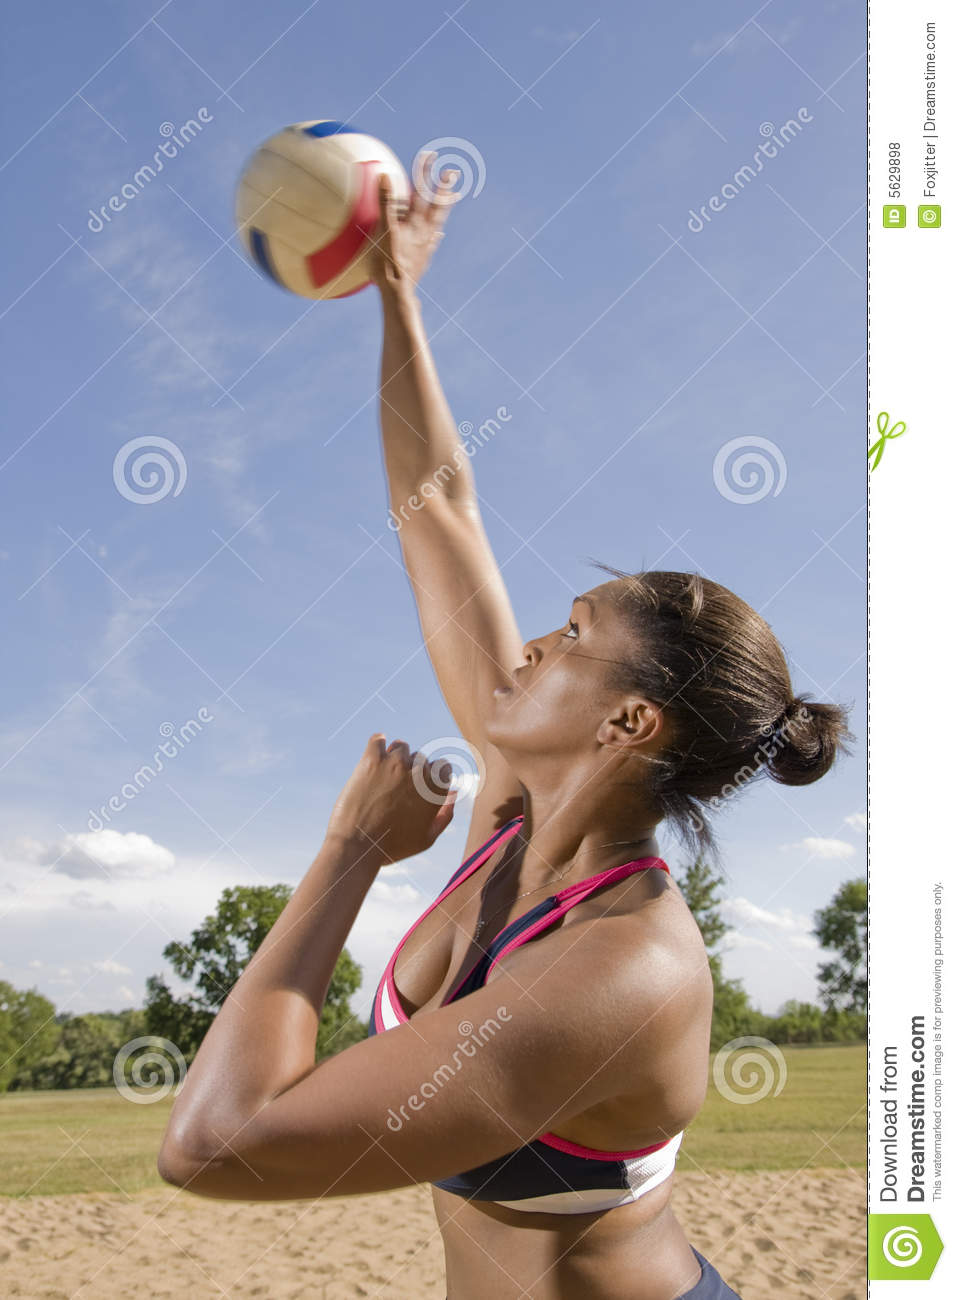 Volleyball Overhand Serve Stock Photo Image Of Court 5629898